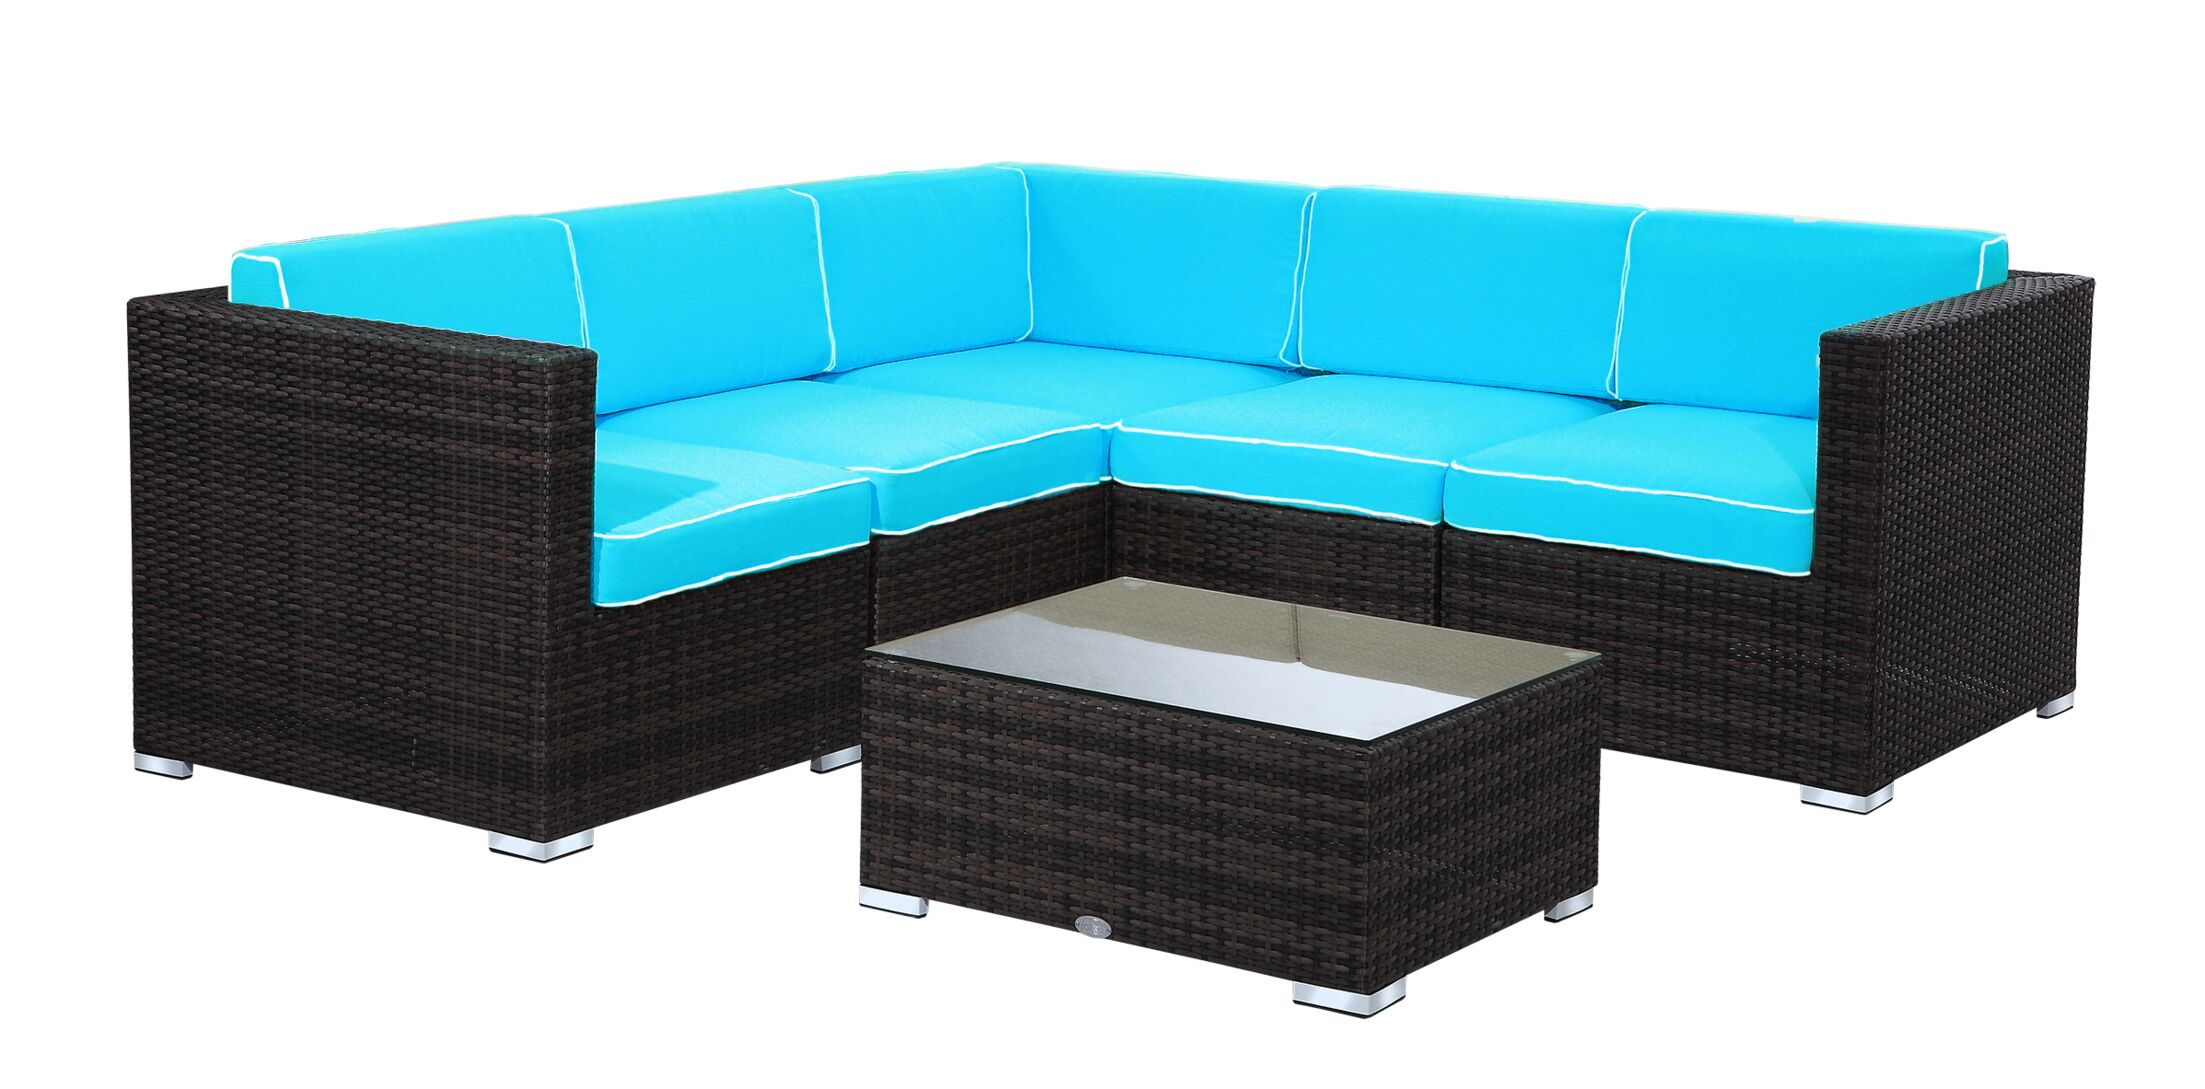 Elsmere 9 Piece Sectional Set with Cushions Fabric: Aqua, Color: Java